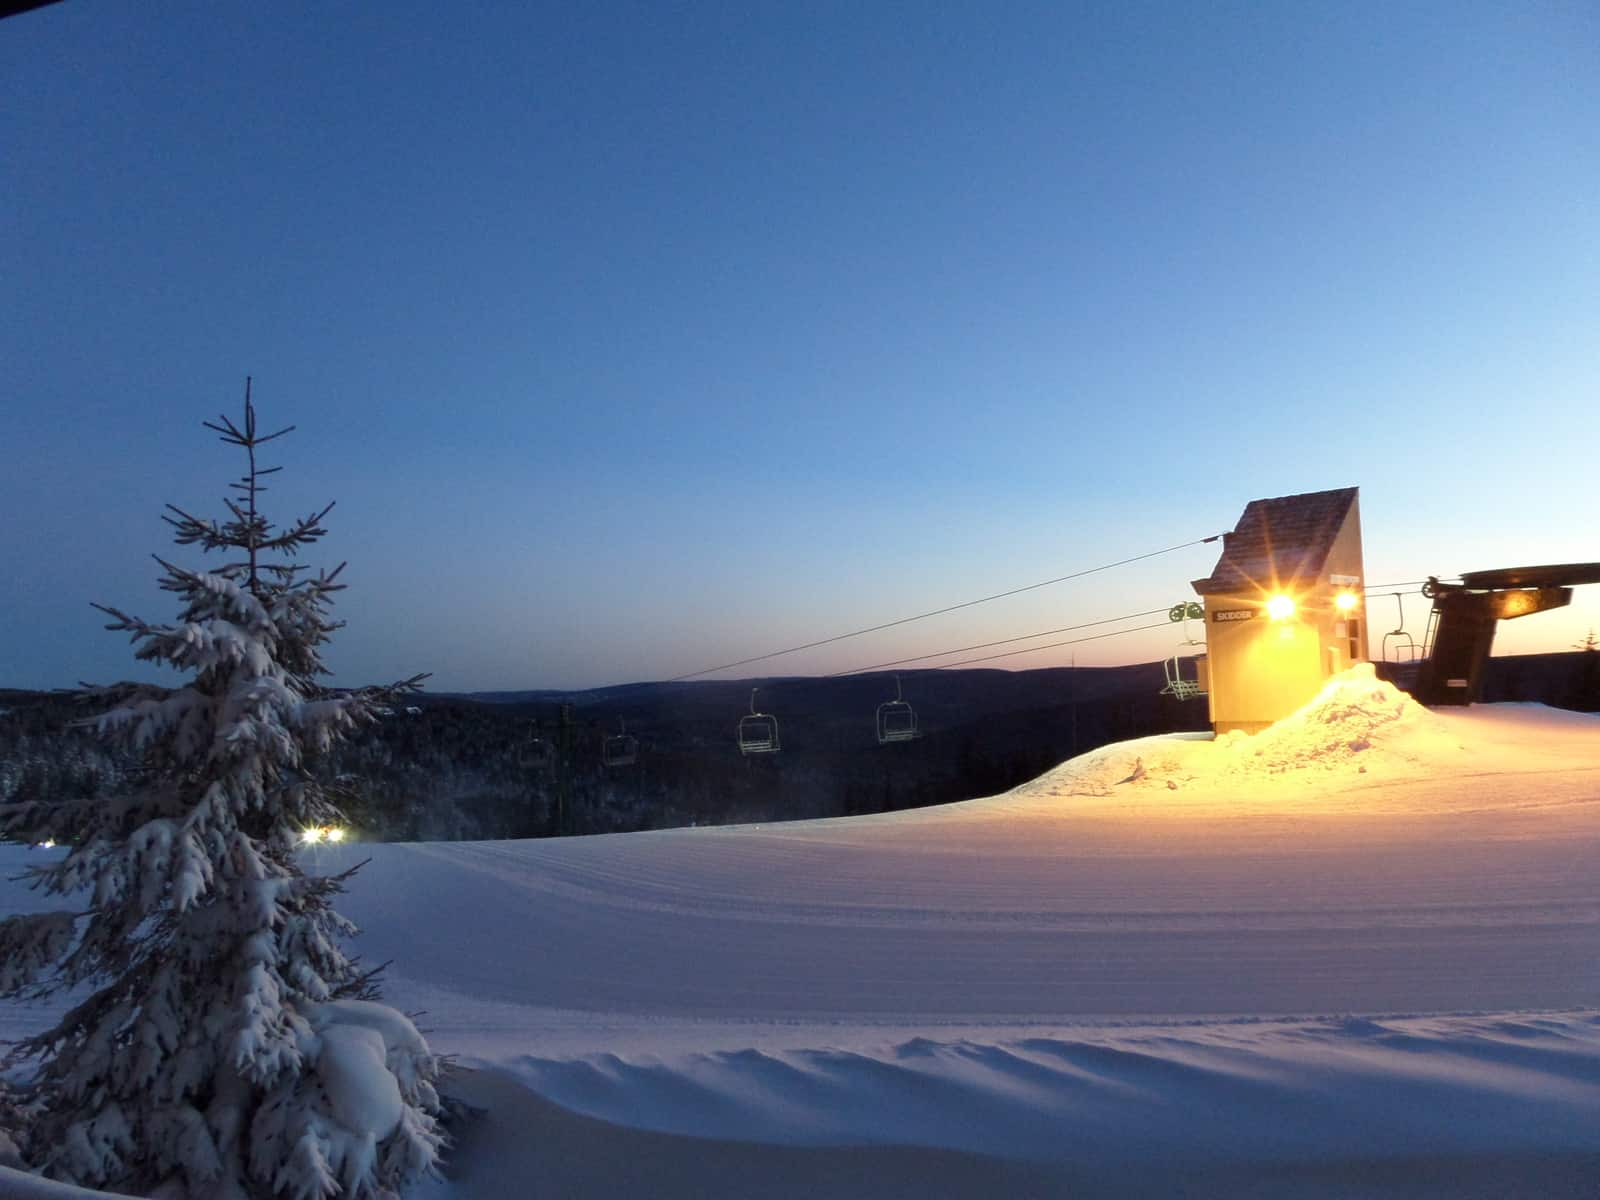 Snowshoe mountain, one of the best ski resorts in West Virginia